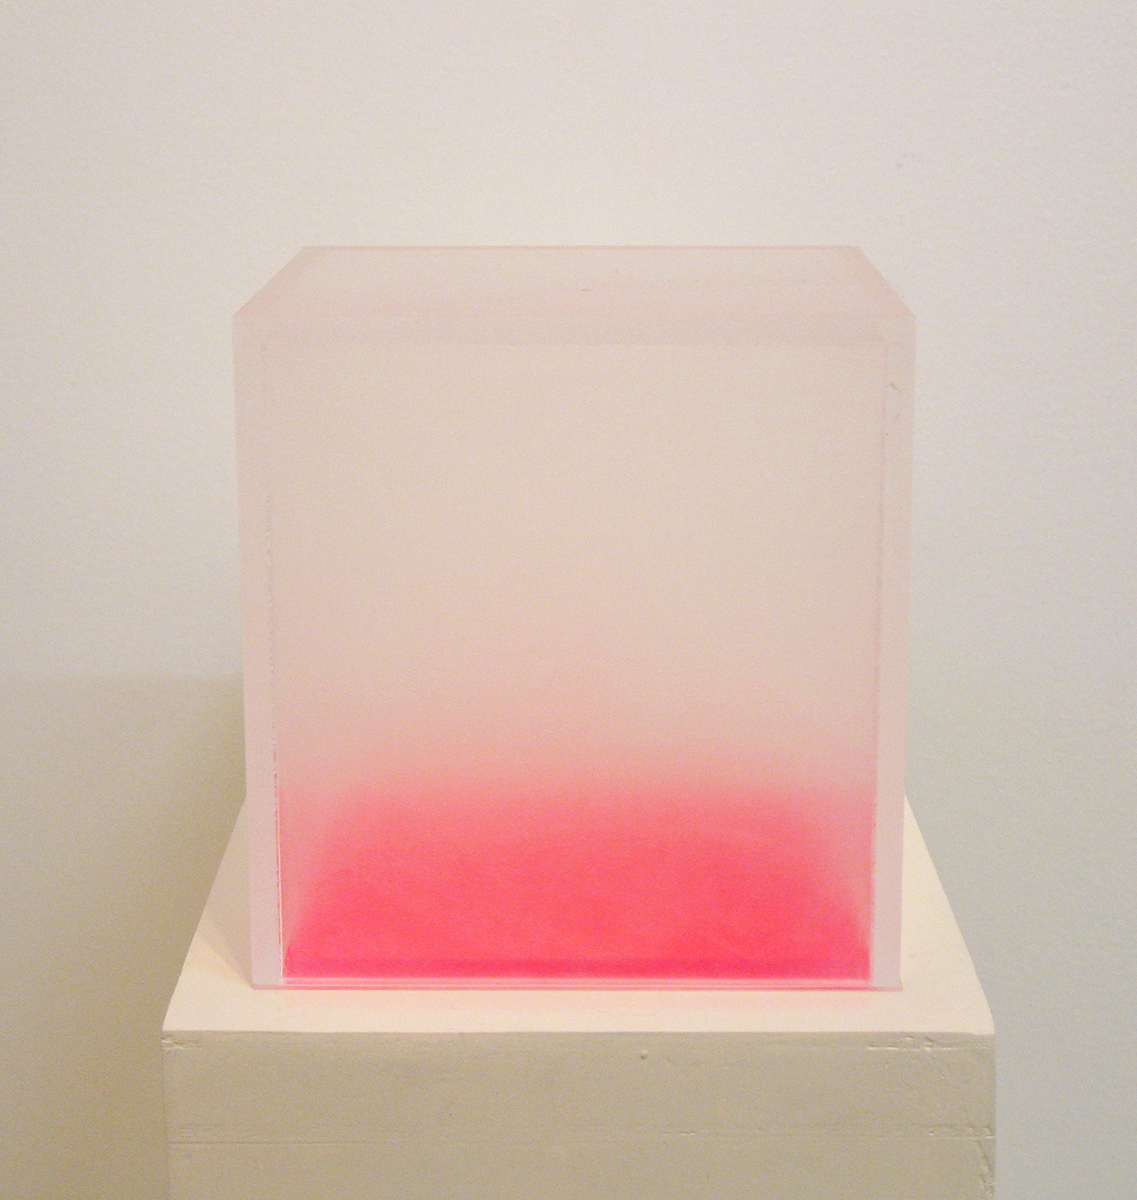 イロ/微分する眼|color/differentiated eyes<br>acrylic acid resin, fluorescent paint 123 x 123 x 123 mm (pedestal: 150 x 400 x 702 mm)